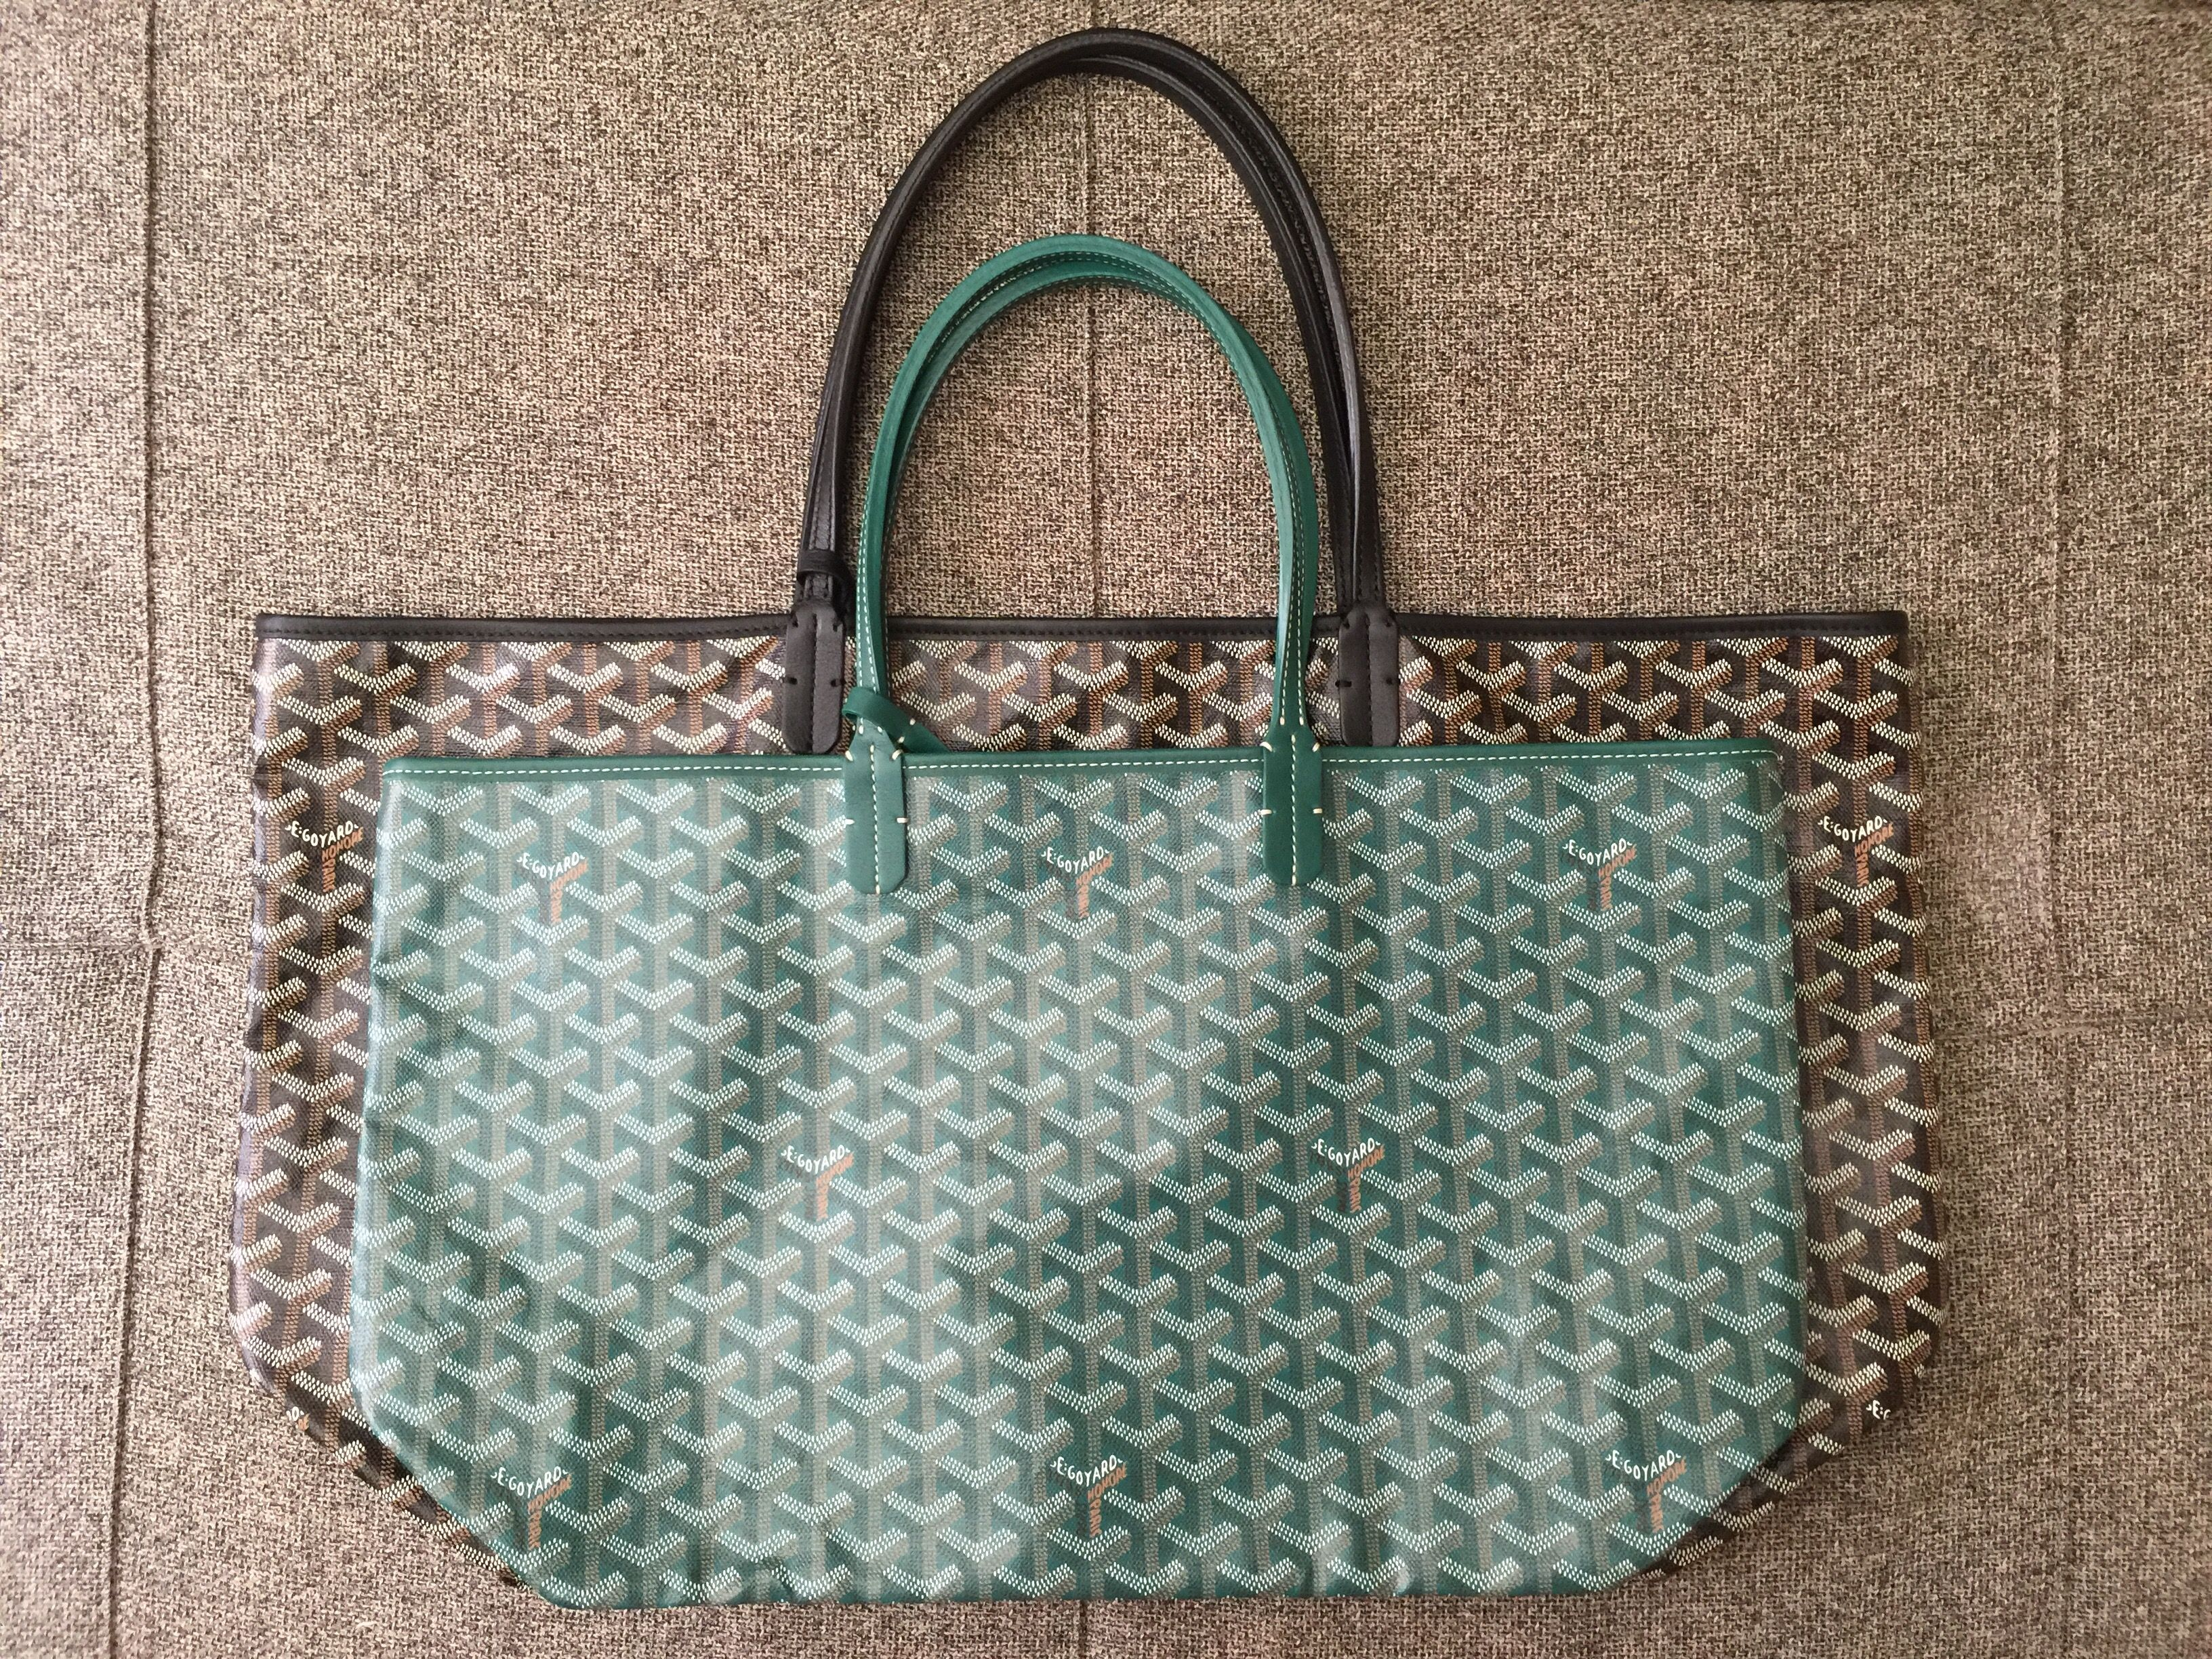 773dac45c6f2 Goyard Saint Louis Tote PM vs GM Goyard Tote, Tote Purse, Brown Leather,